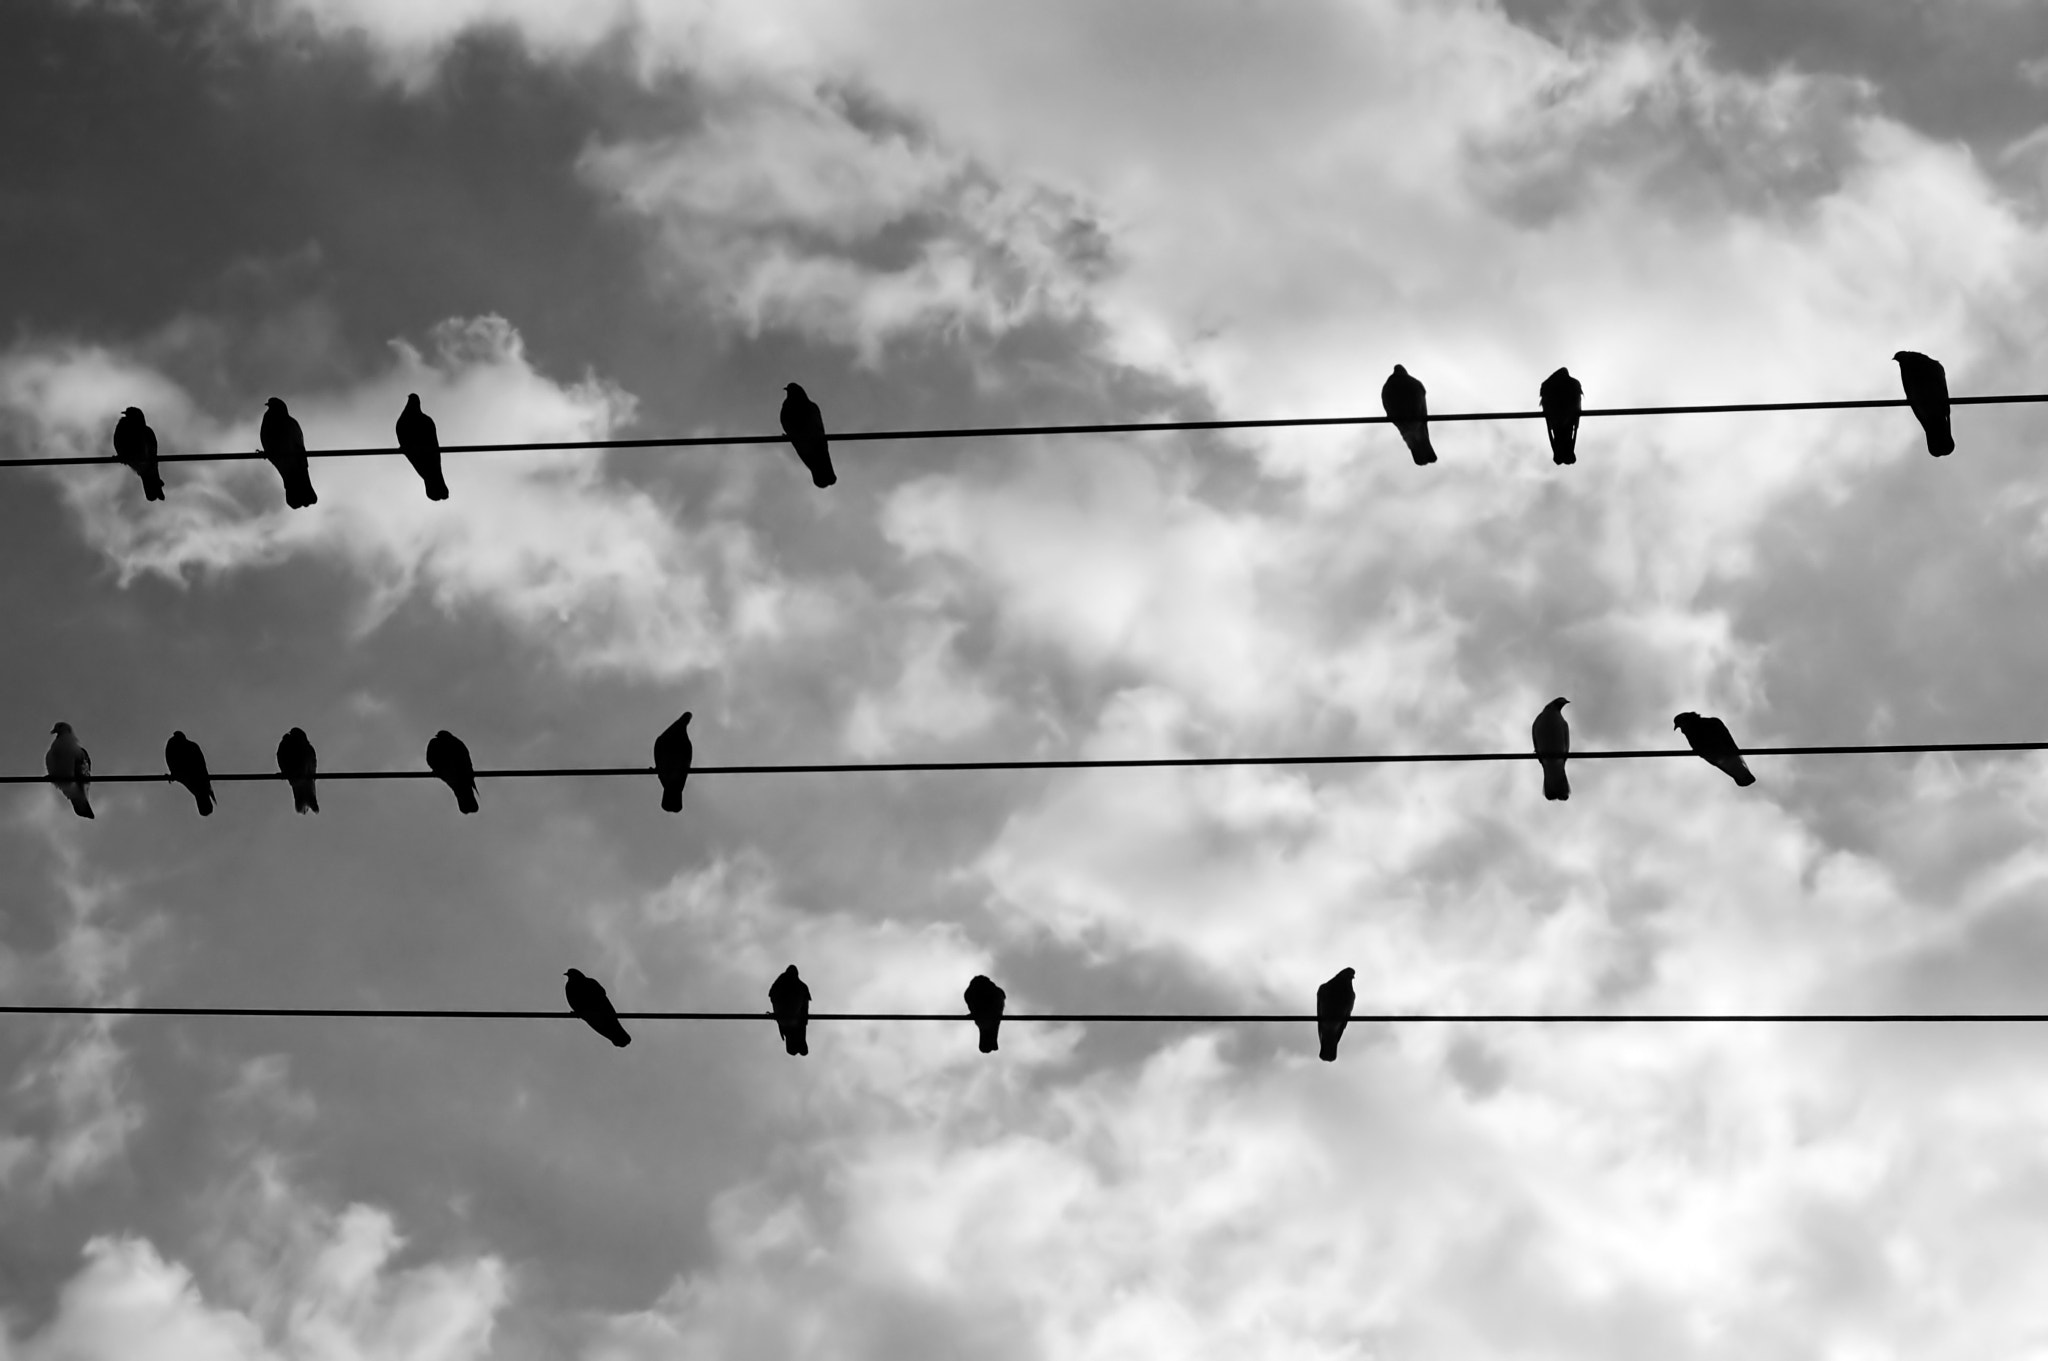 Photograph birds on a wire by Dimitris Kolyris on 500px